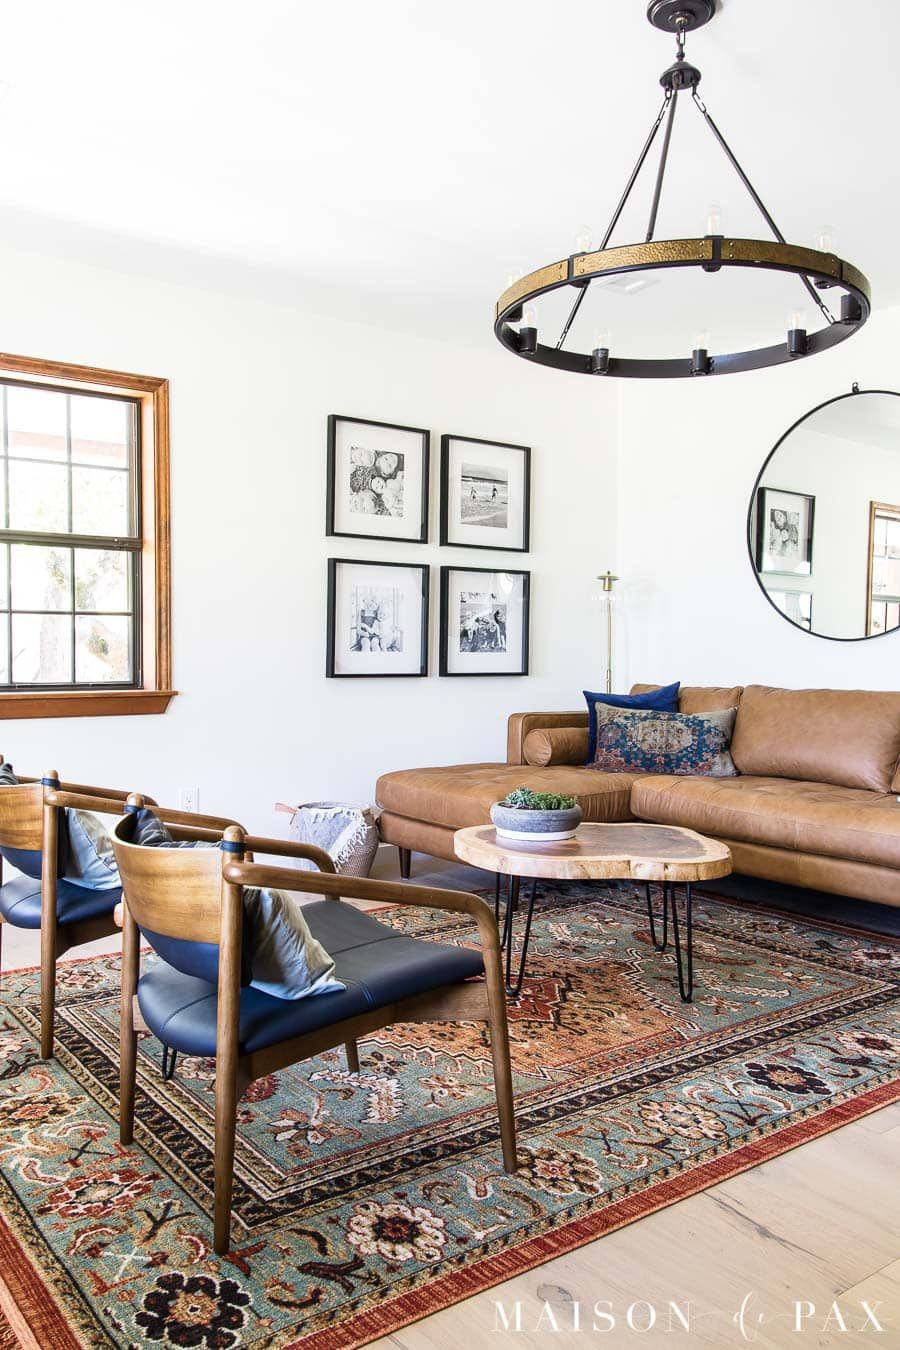 50 Living Room Ideas With Leather Furniture 2021 Brown Leather Sofa Living Room Leather Sofa Living Room Brown Leather Couch Living Room